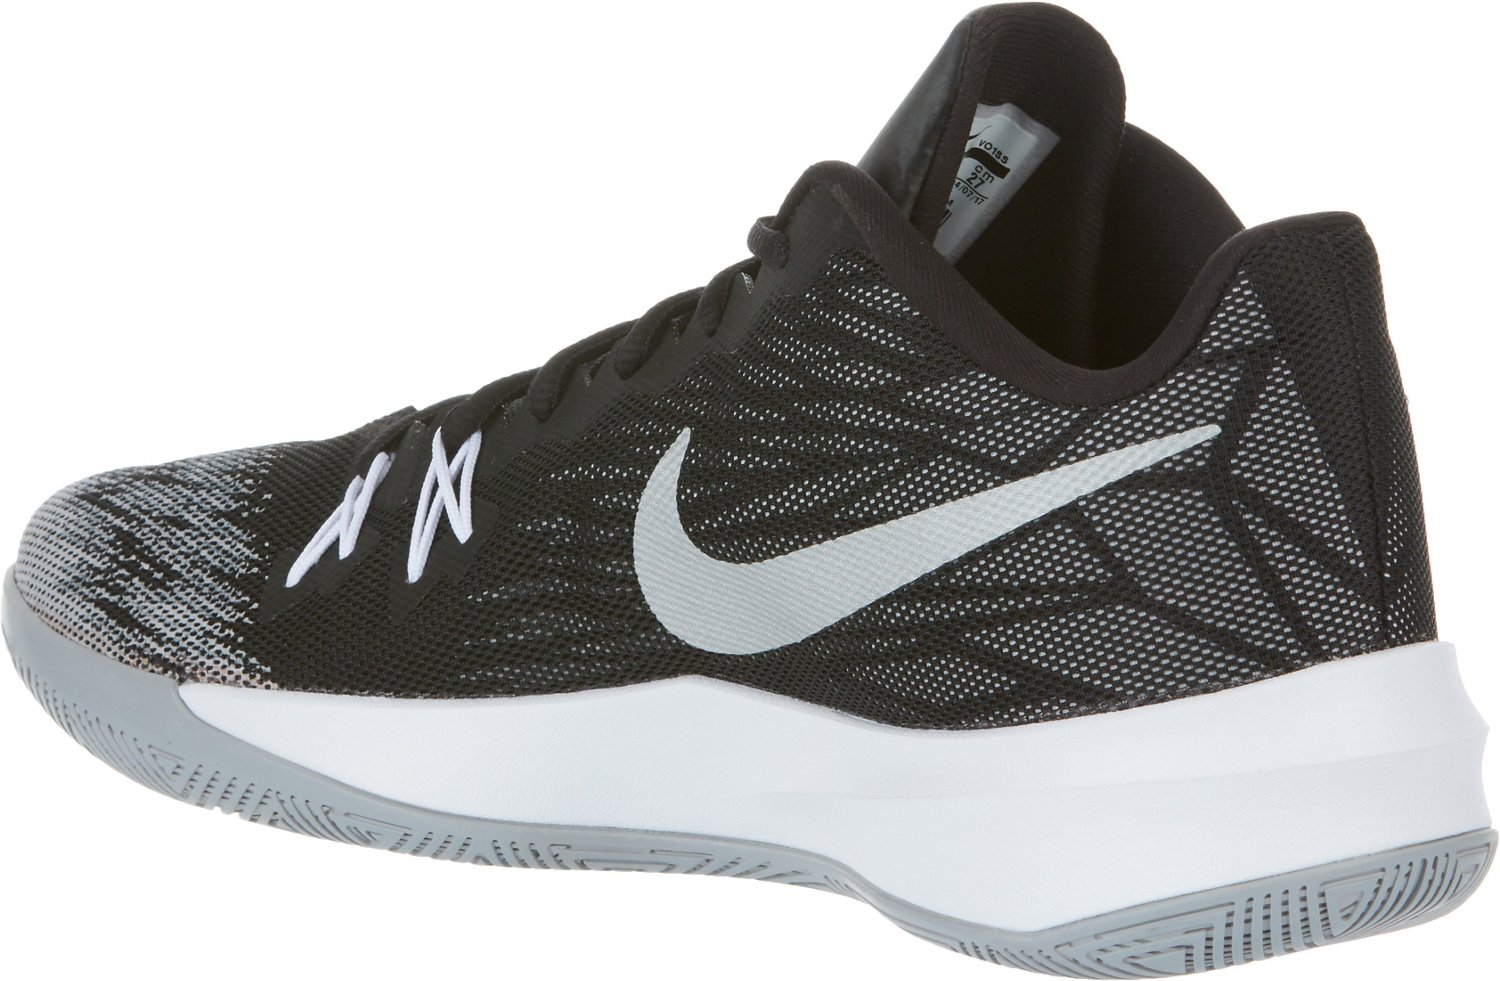 Nike Men's Zoom Evidence II Basketball Shoes - view number 1